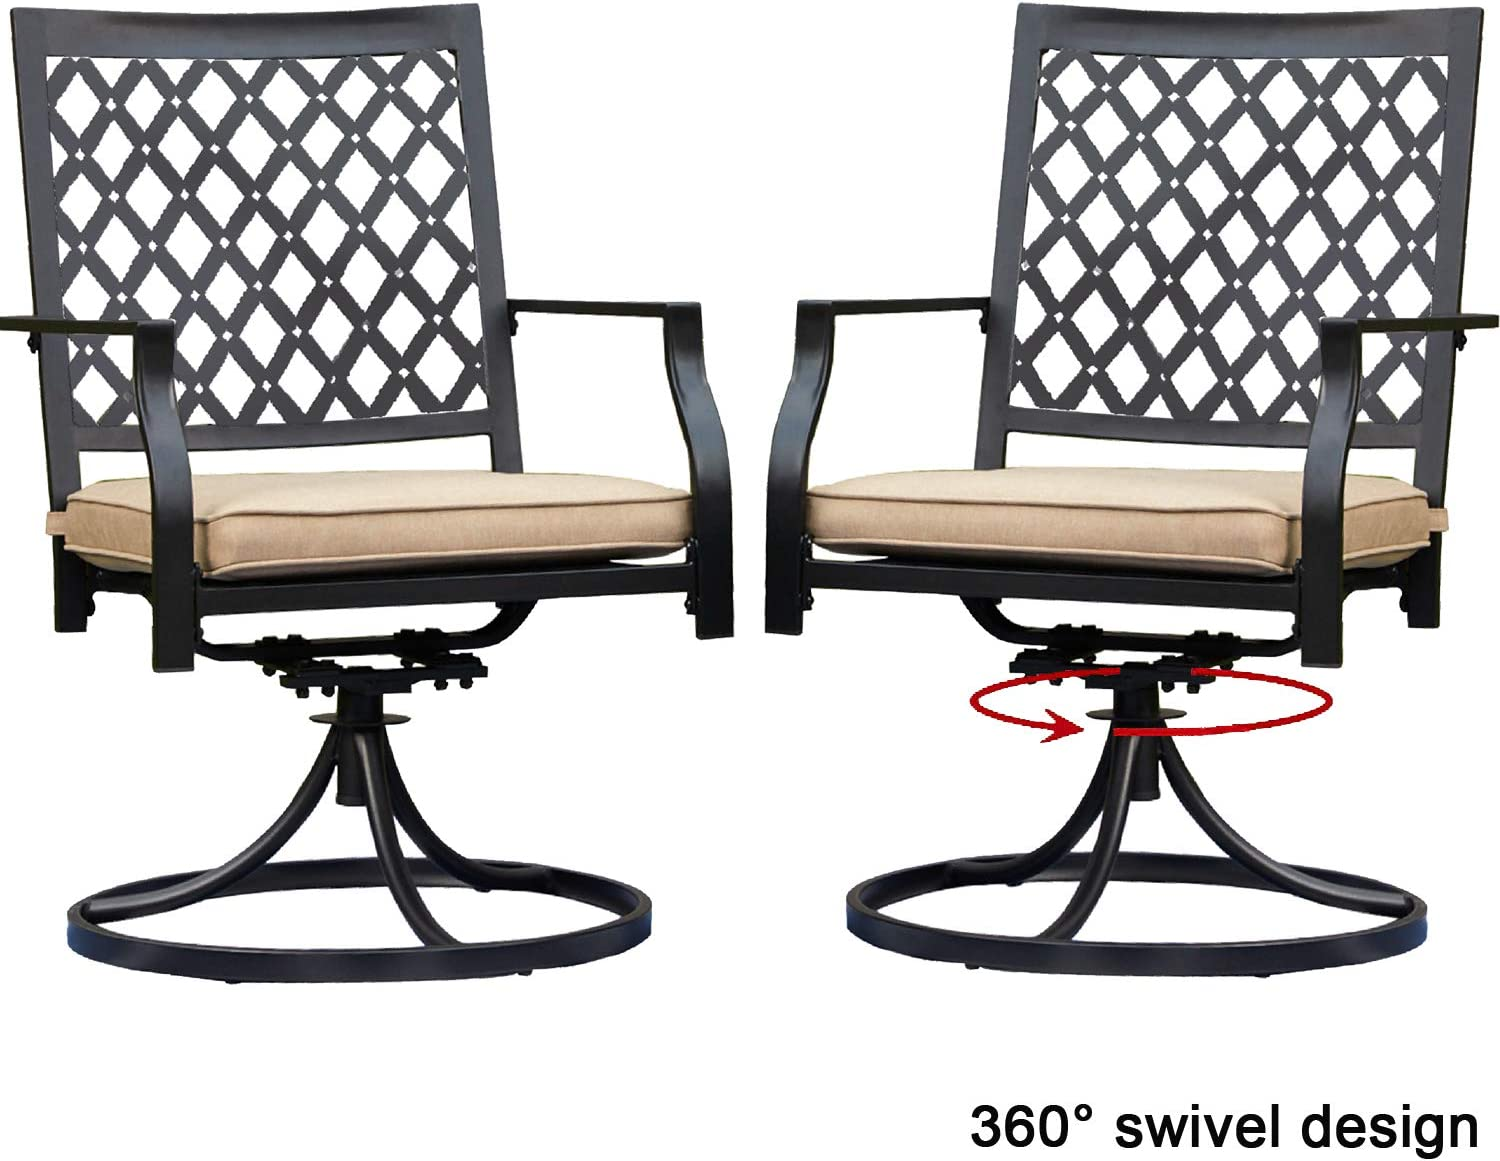 Top Space Outdoor Swivel Chairs Patio Rocker Lounge Chair Metal Bistro Set Club Arm Chair Dining Furniture for Garden Backyard (Set of 2, Beige)